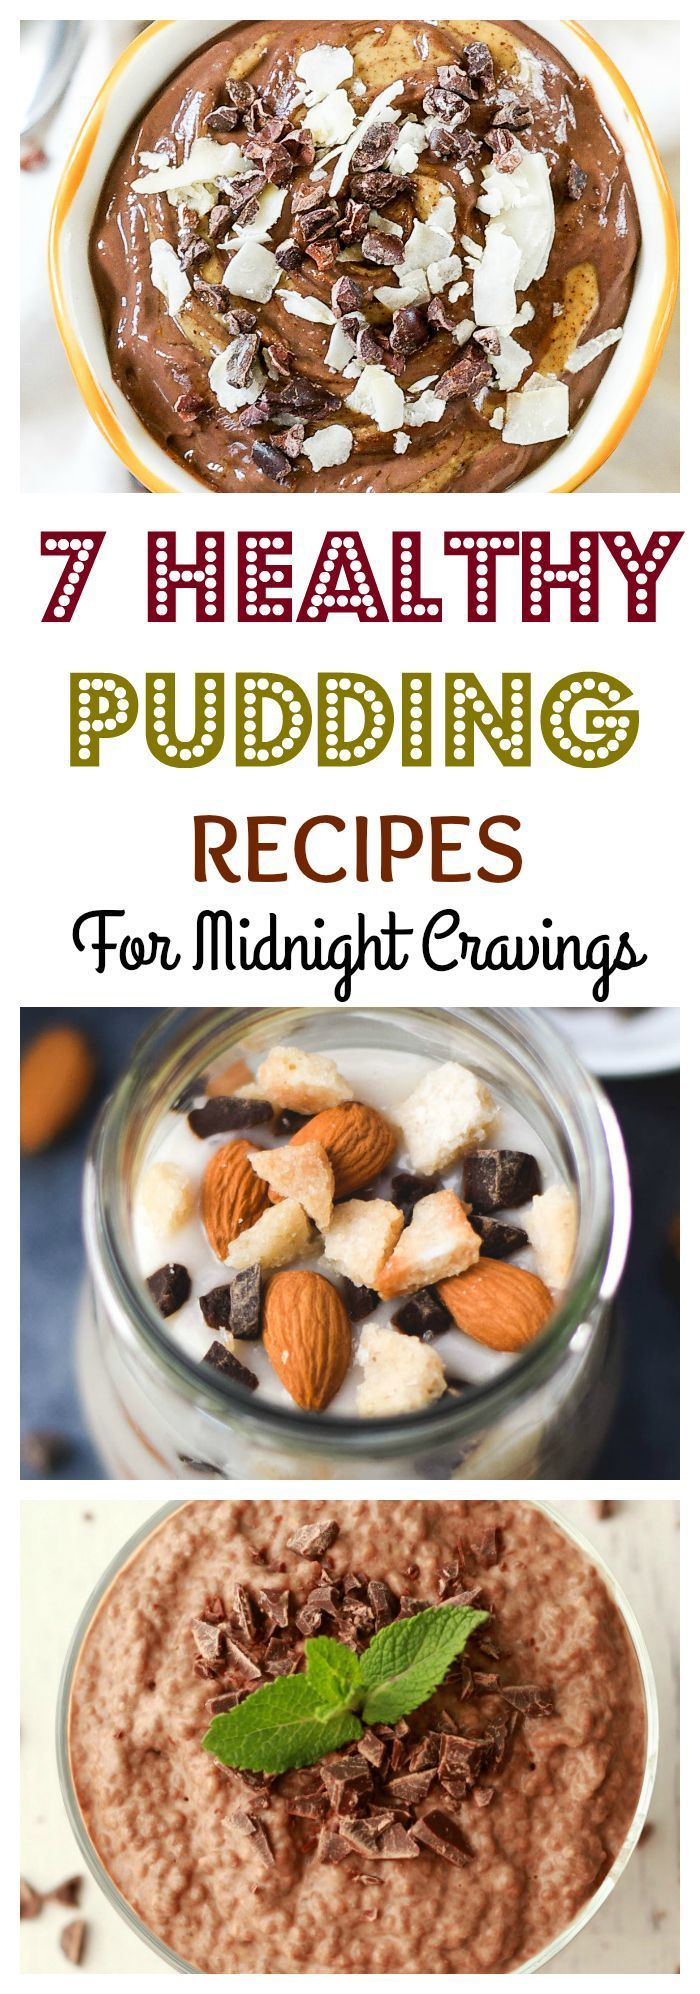 Delicious puddings with out all the calories for your midnight snack sweet tooth!